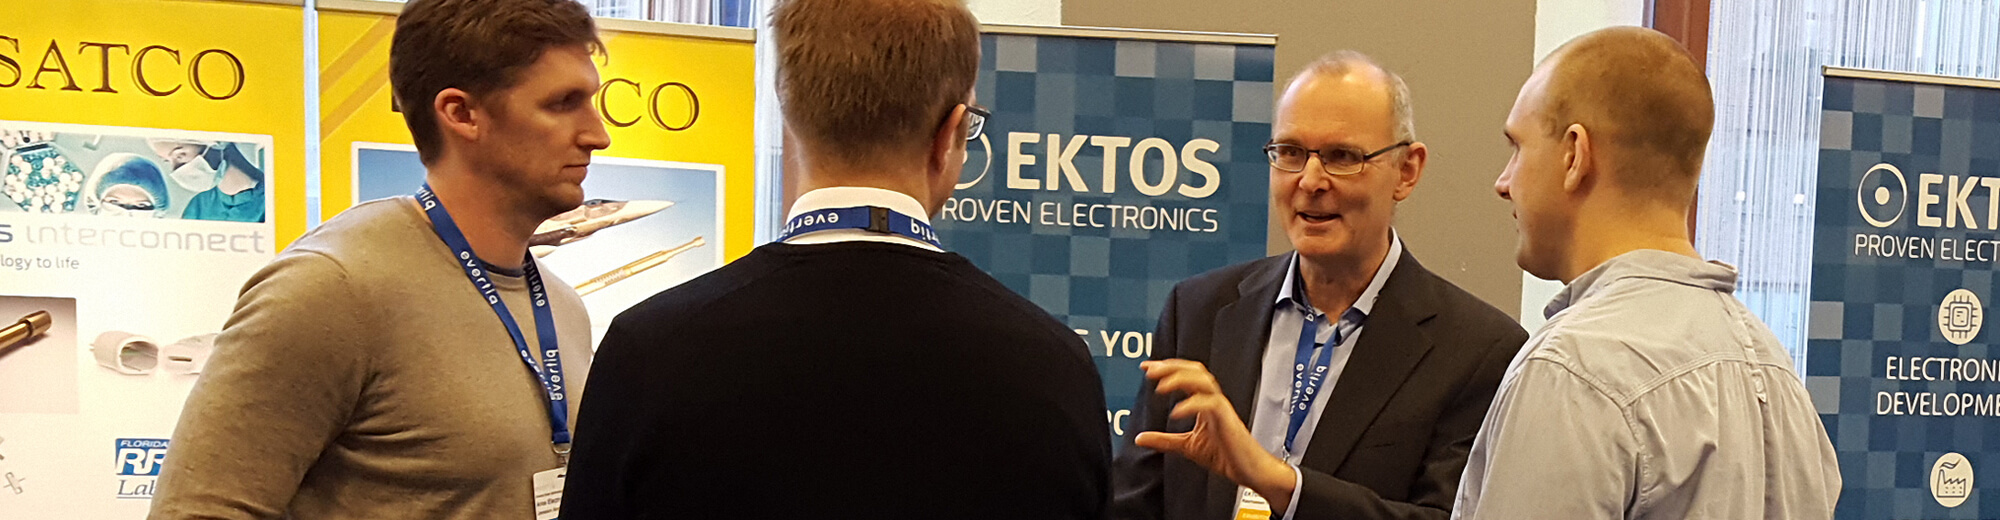 EKTOS at Evertiq in Gothenburg